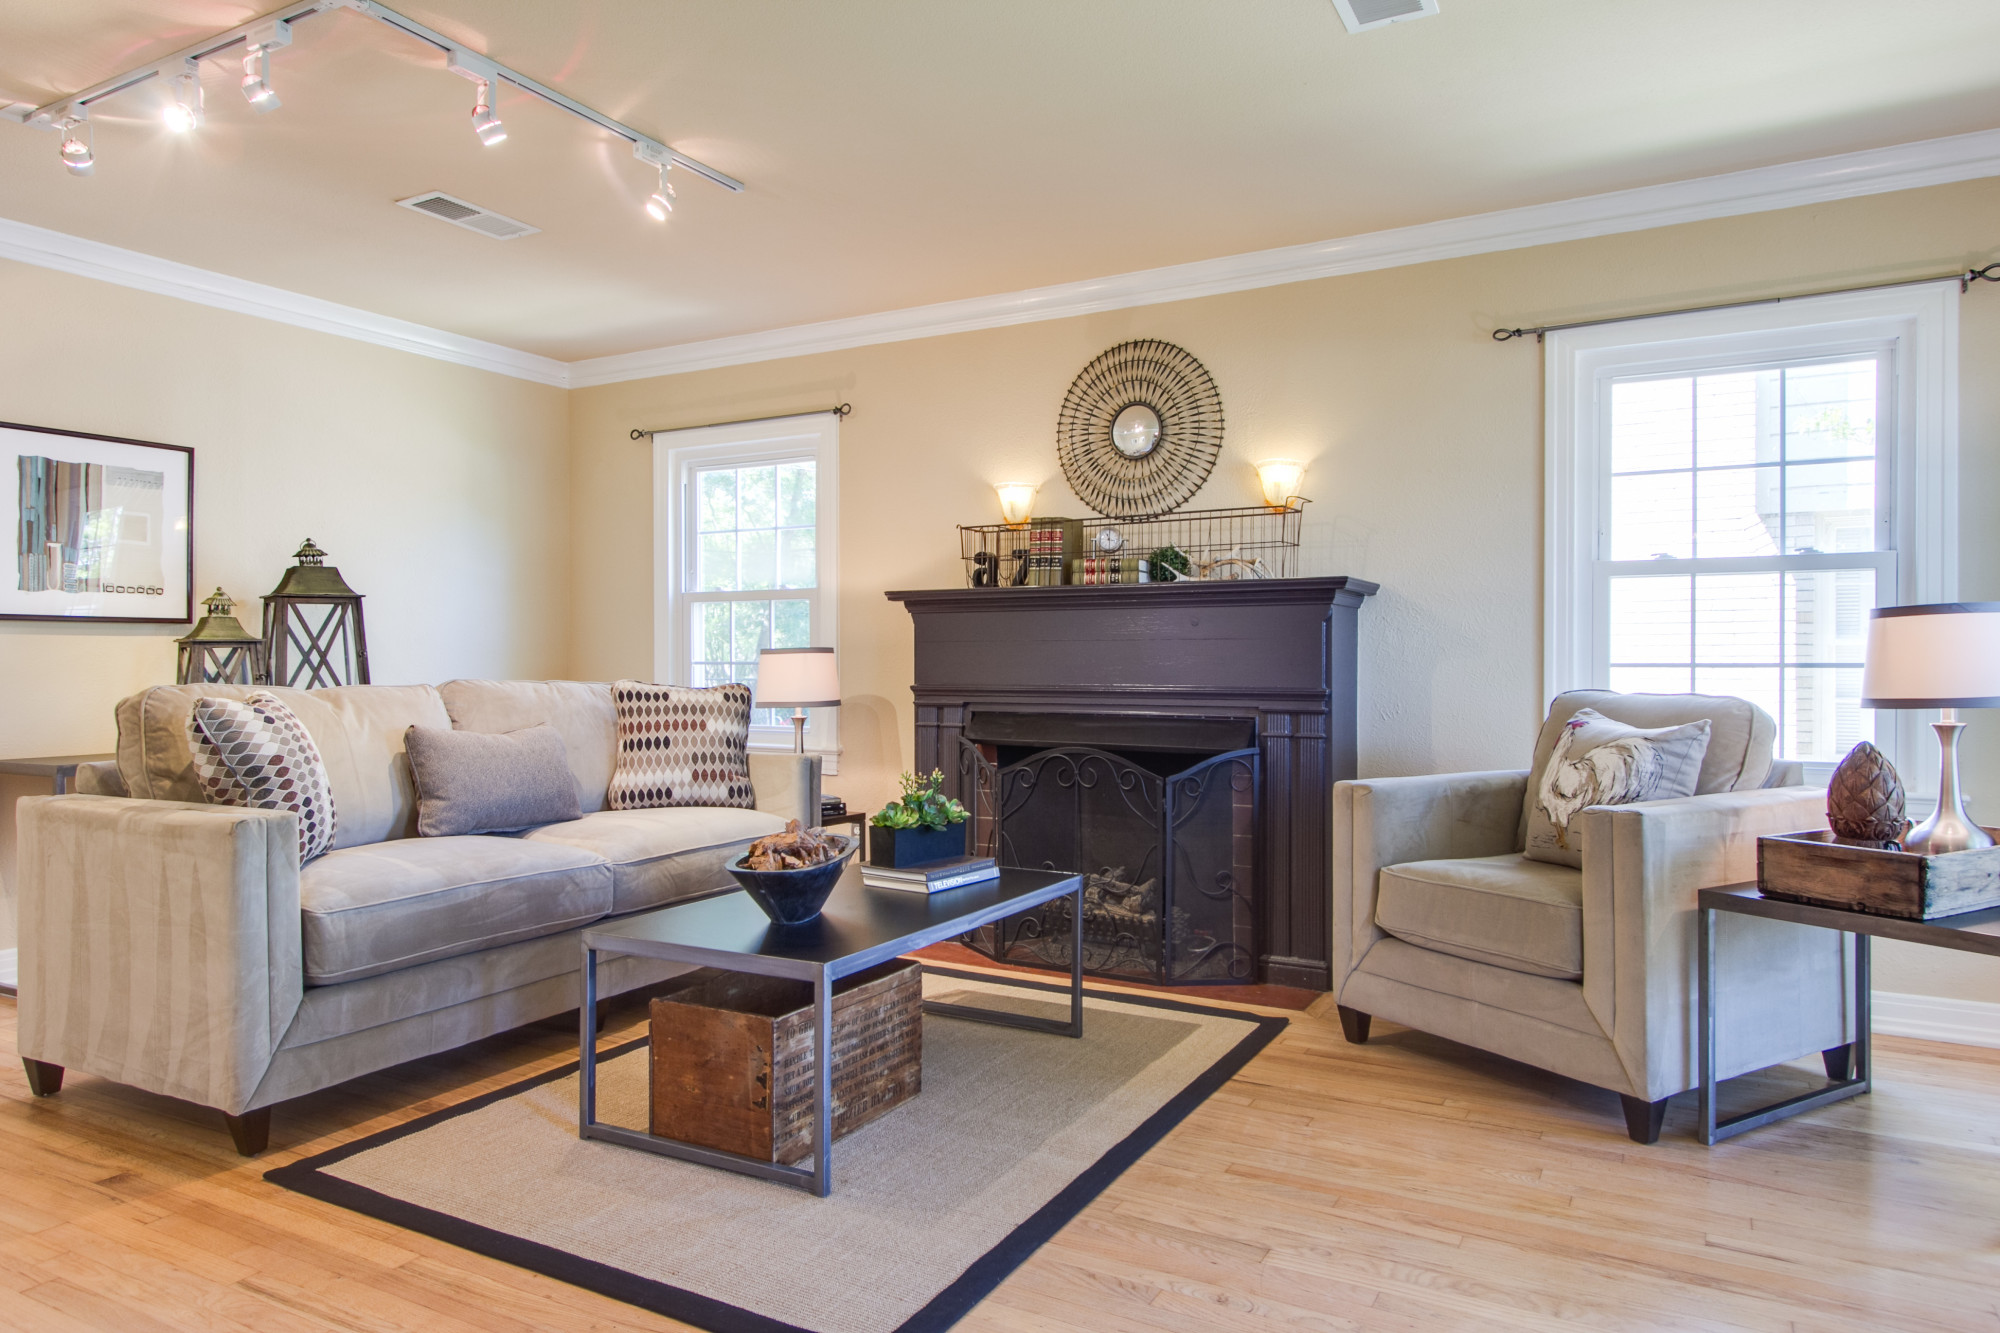 Home Star Staging Real Estate Listings That Are Staged Get